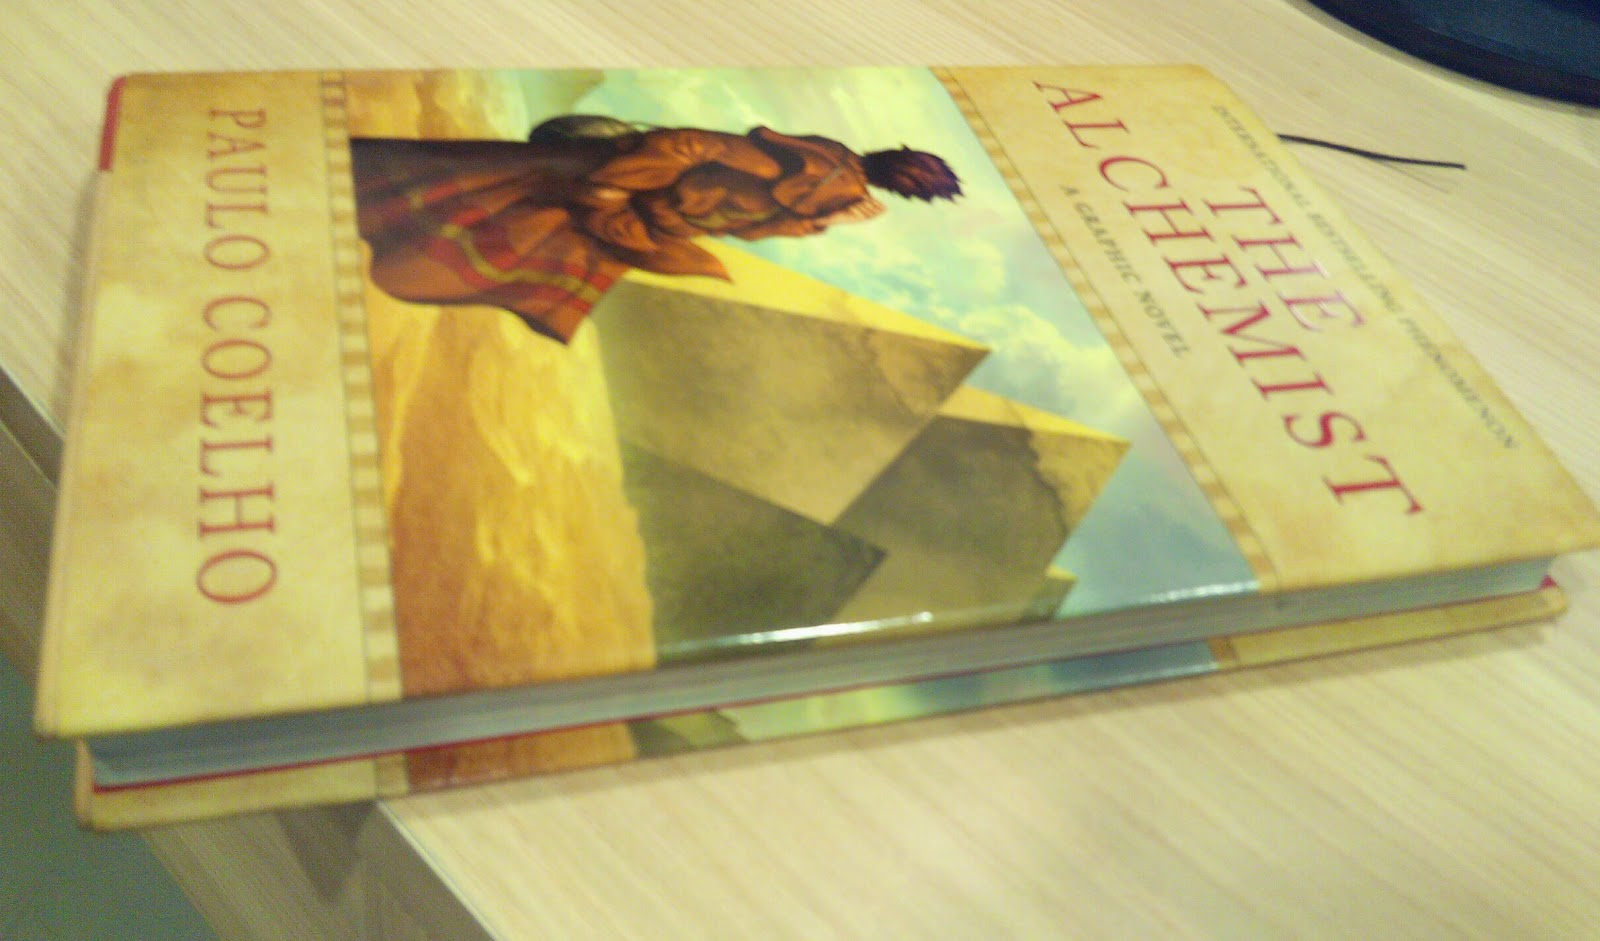 The Alchemist by Paulo Coelho, Graphical Novel